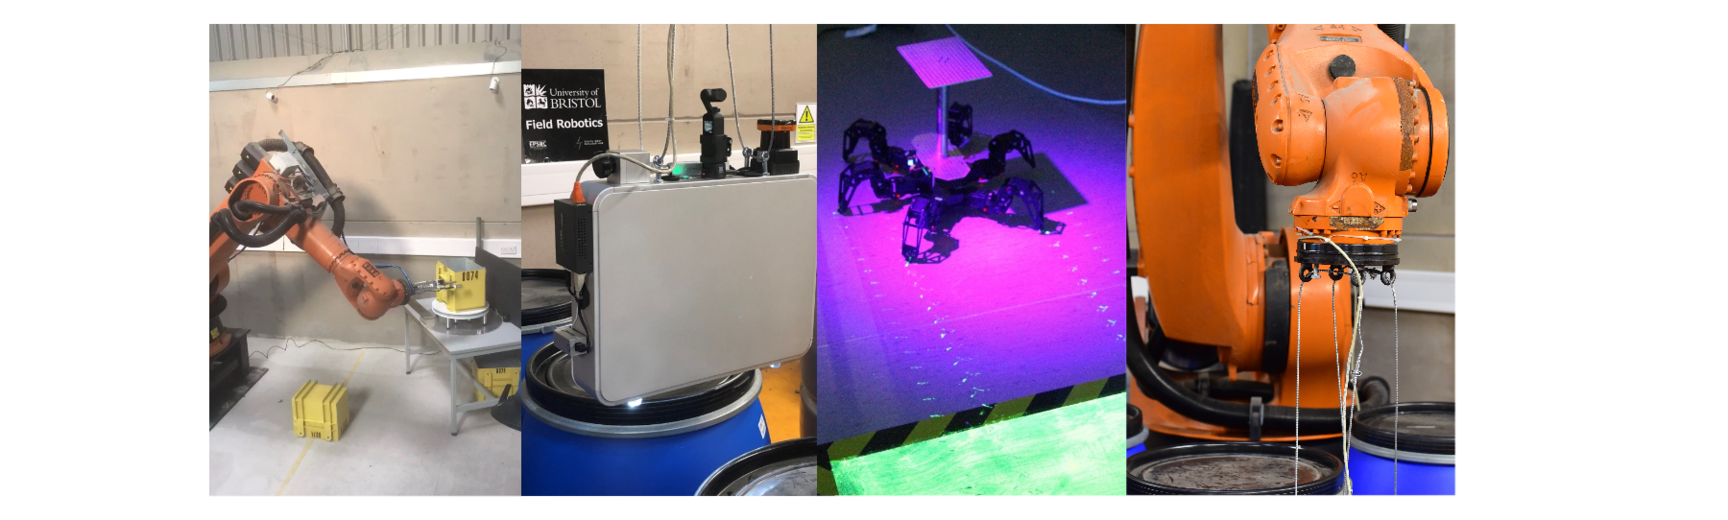 Left to right: Kuka robotics arm scanning a waste container; radiation detection inspection suitcase; Spider robot in a mock-up radioactive environment; Kuka robotic arm and mock-up waste drums (Credits: South West Nuclear Hub – University of Bristol)